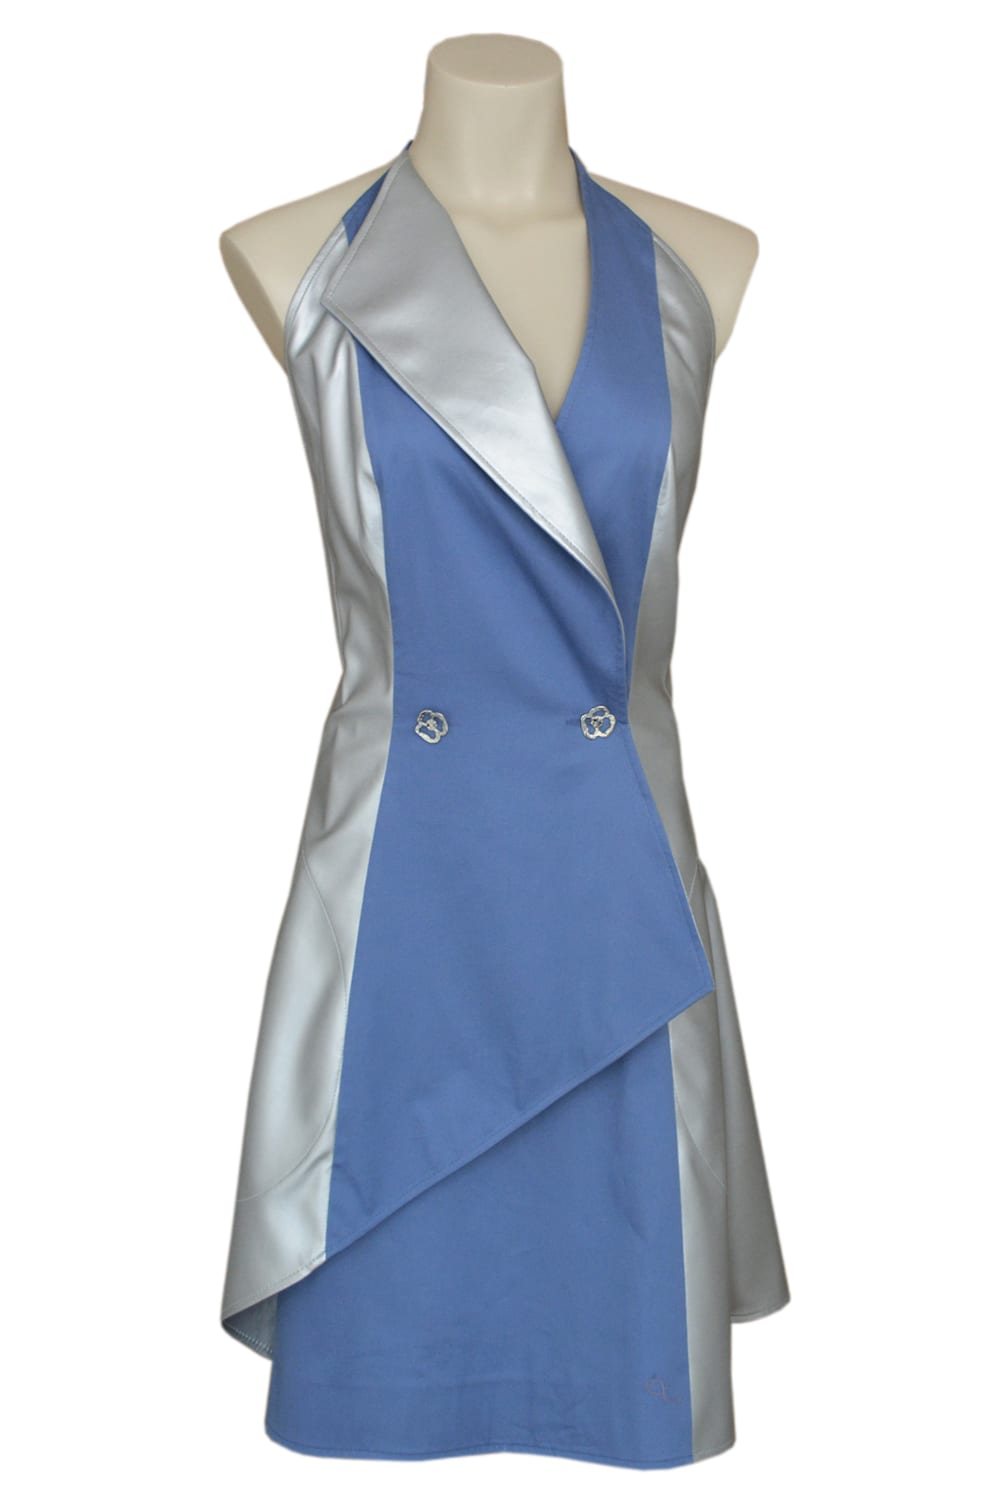 Dress suit in blue cotton and silver imitation leather. Naked back.